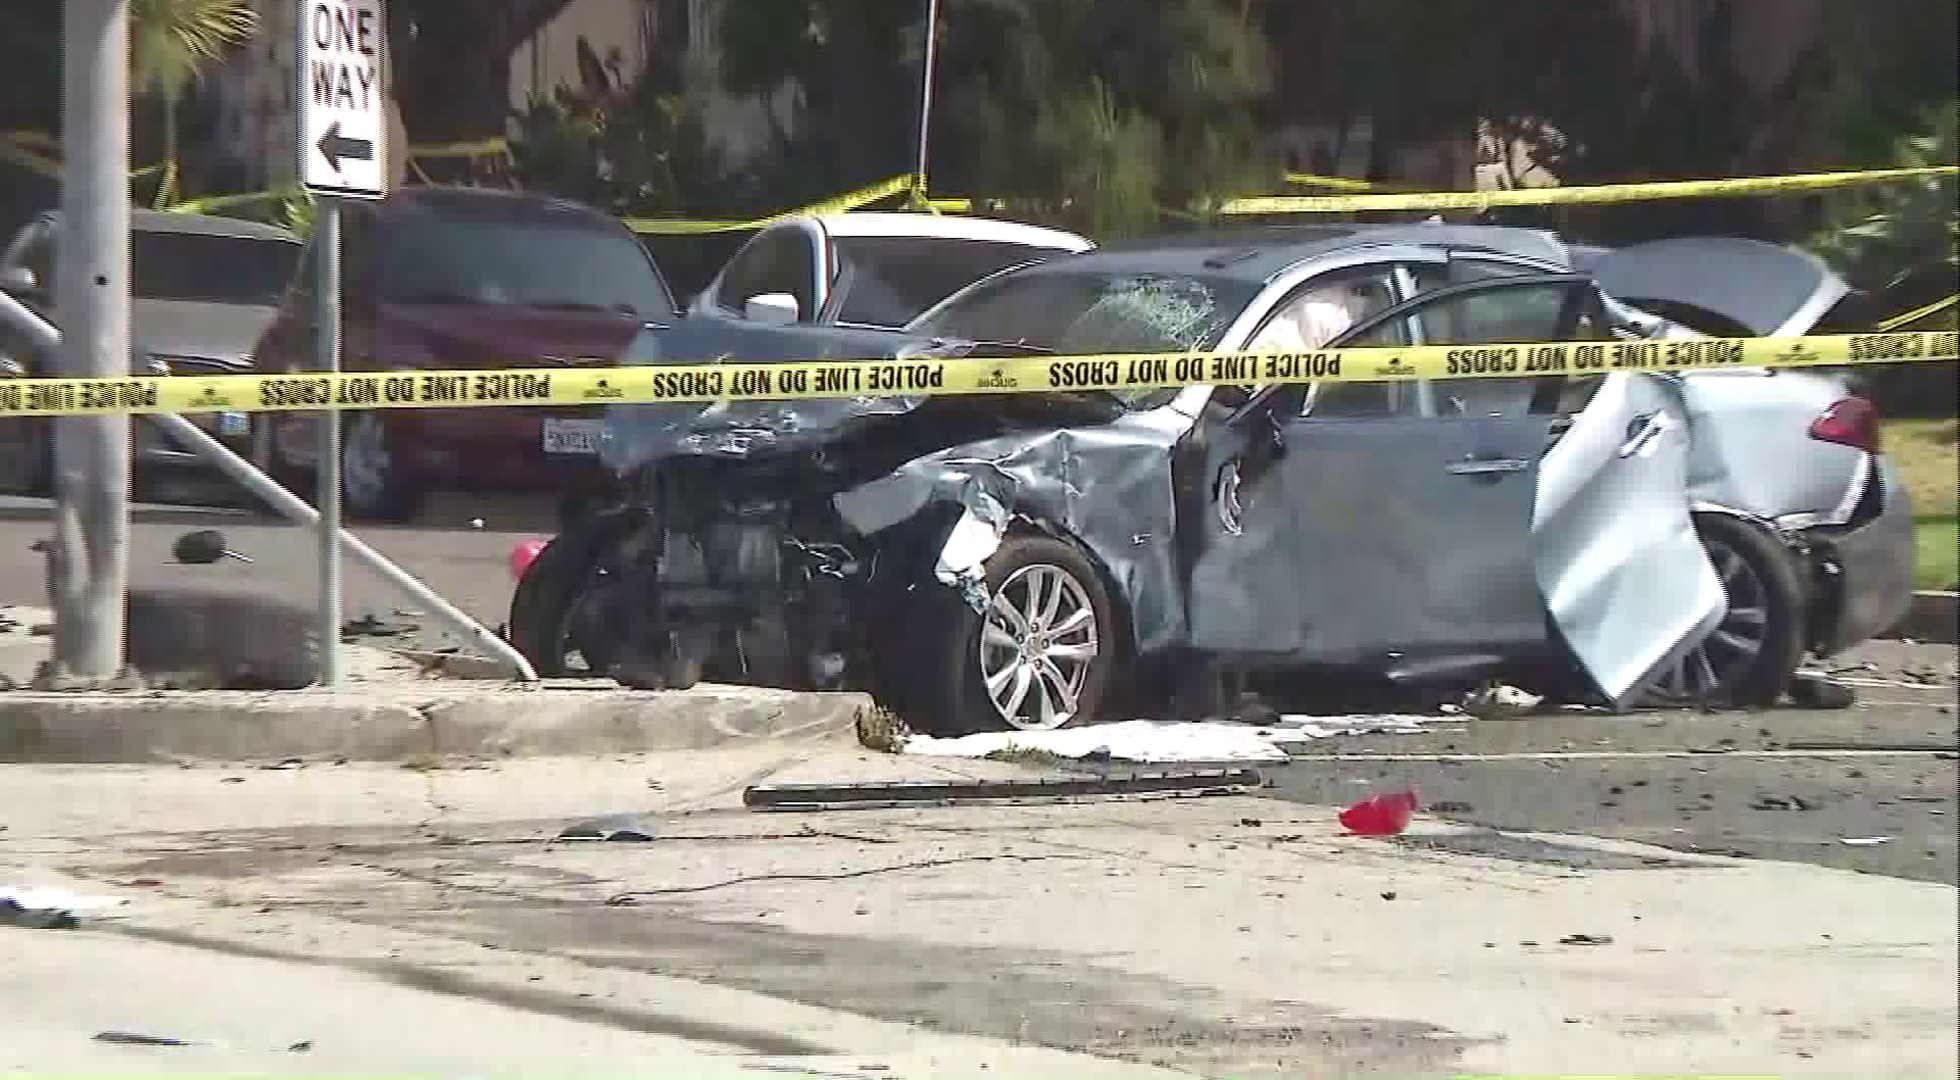 One of the vehicles involved in the crash sheared off a street sign at the scene on May 10, 2018. (Credit: KTLA)